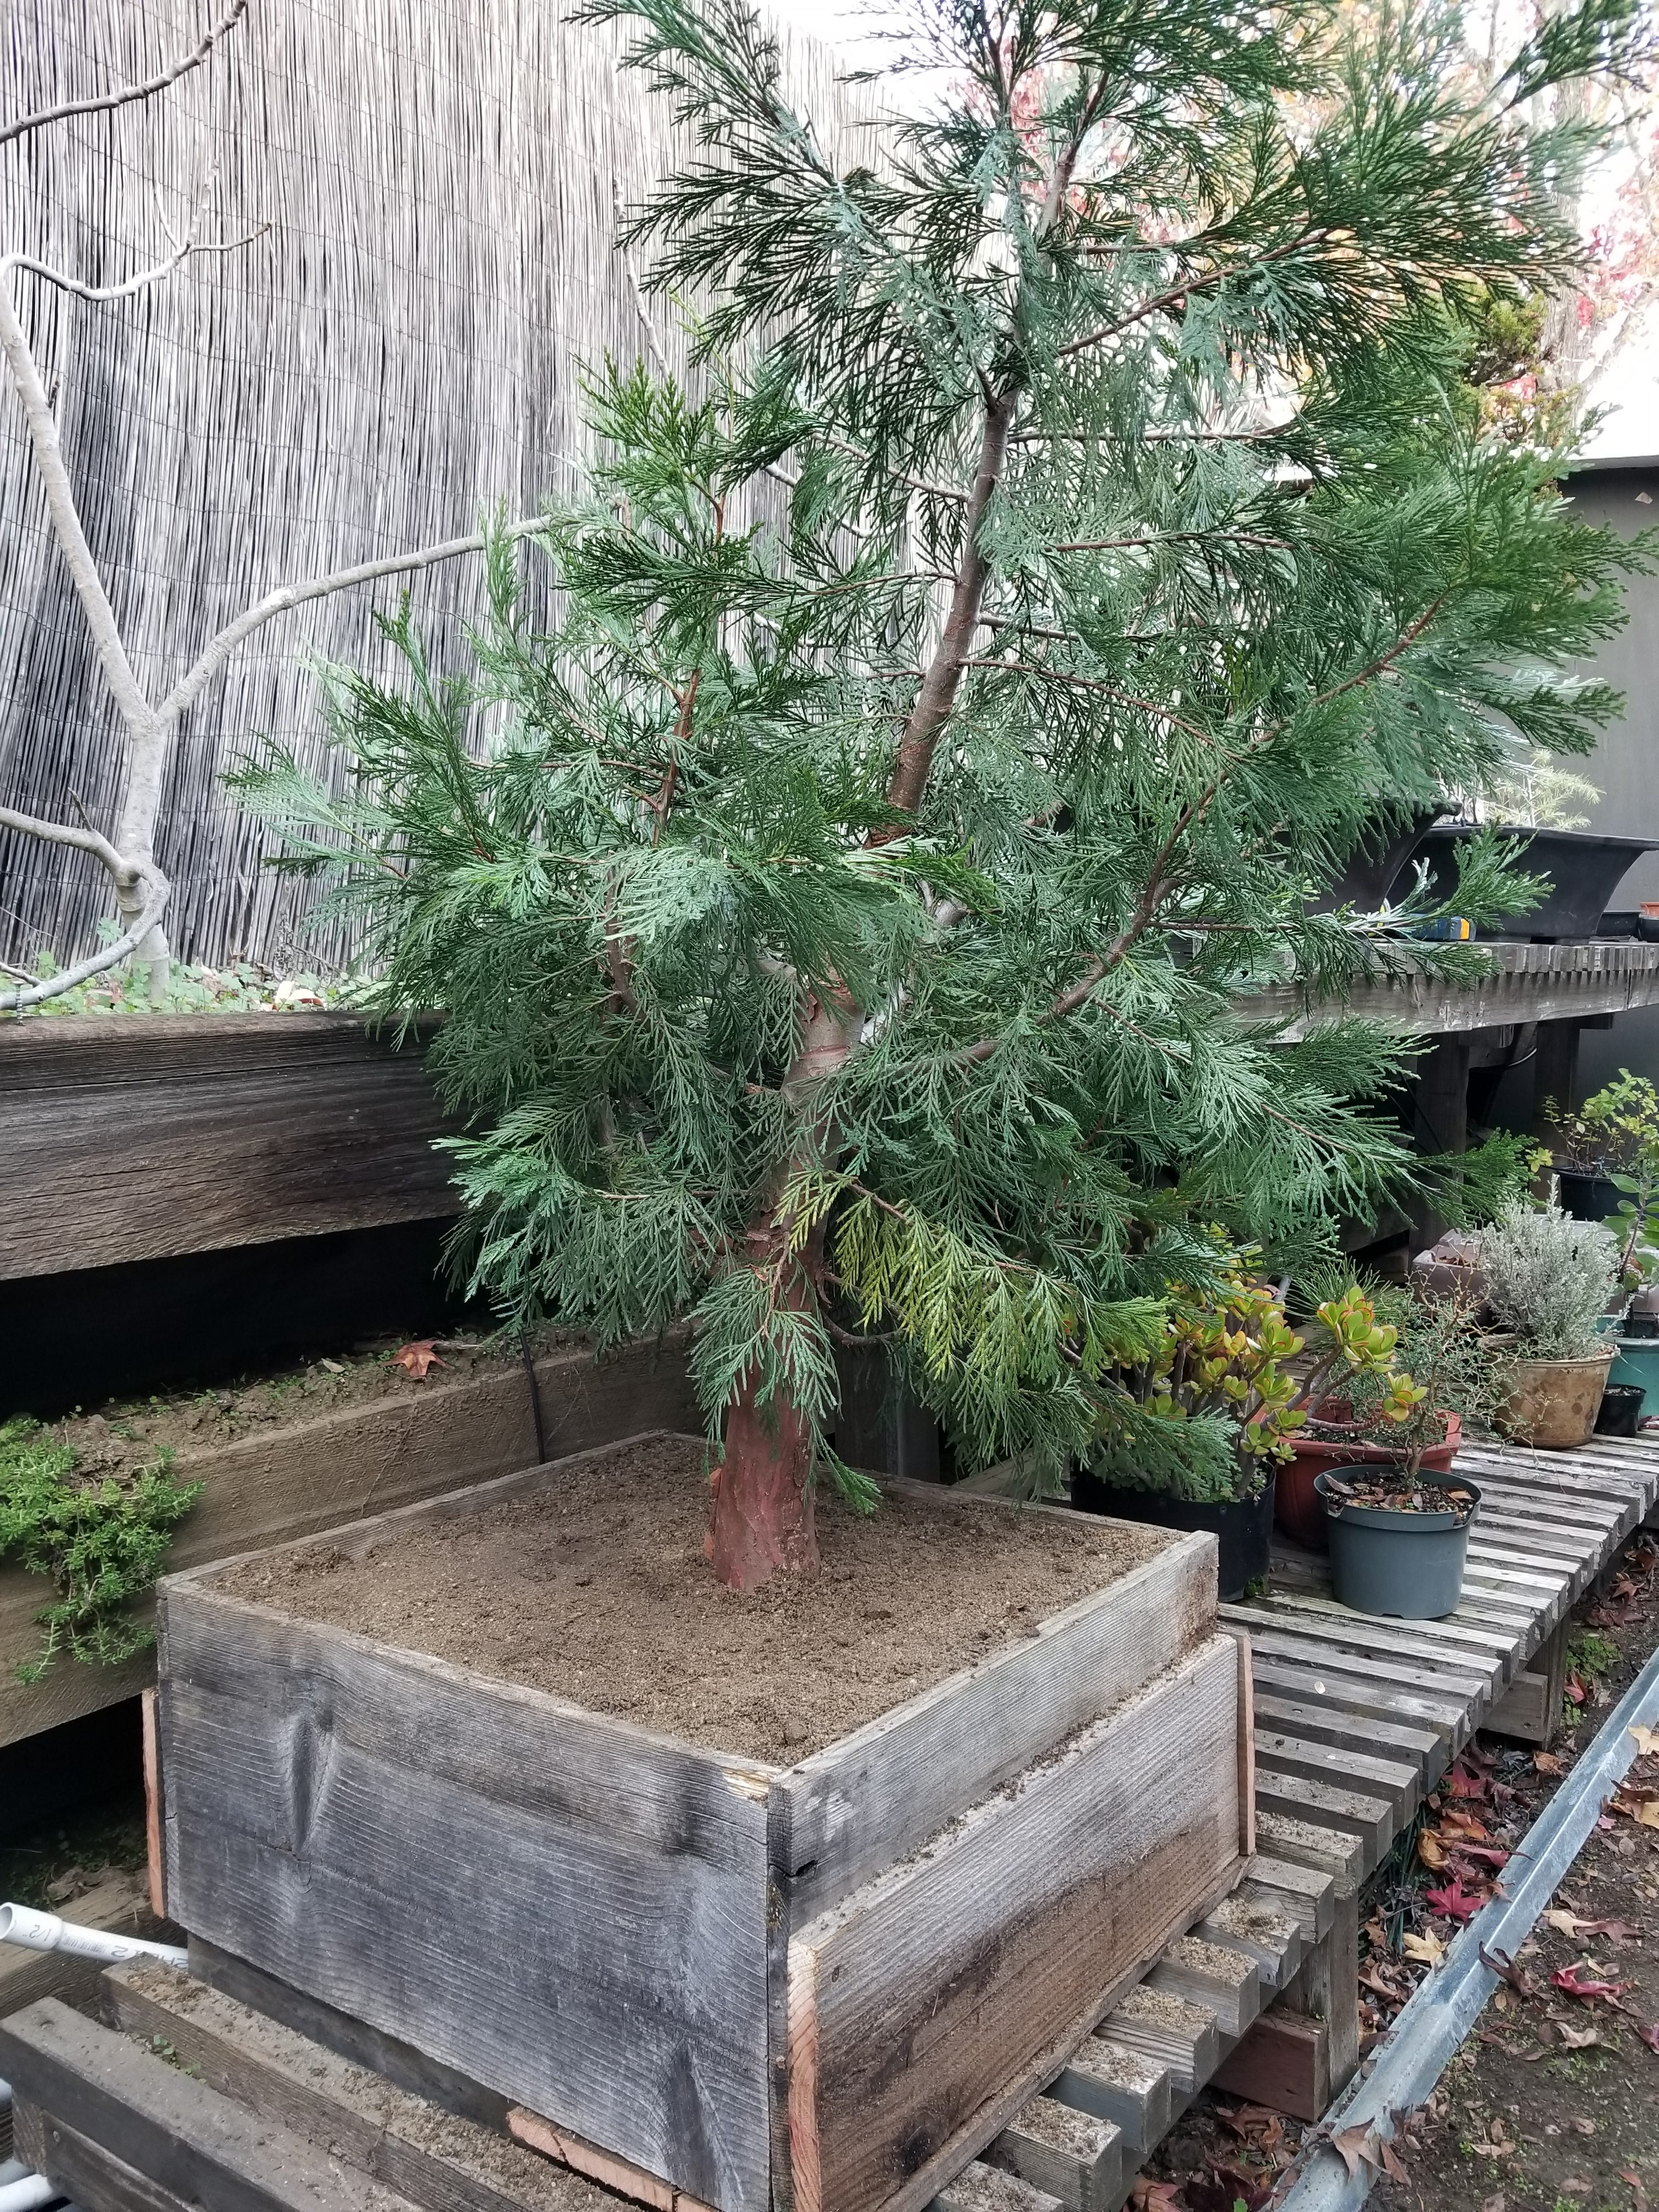 California Incense Cedar